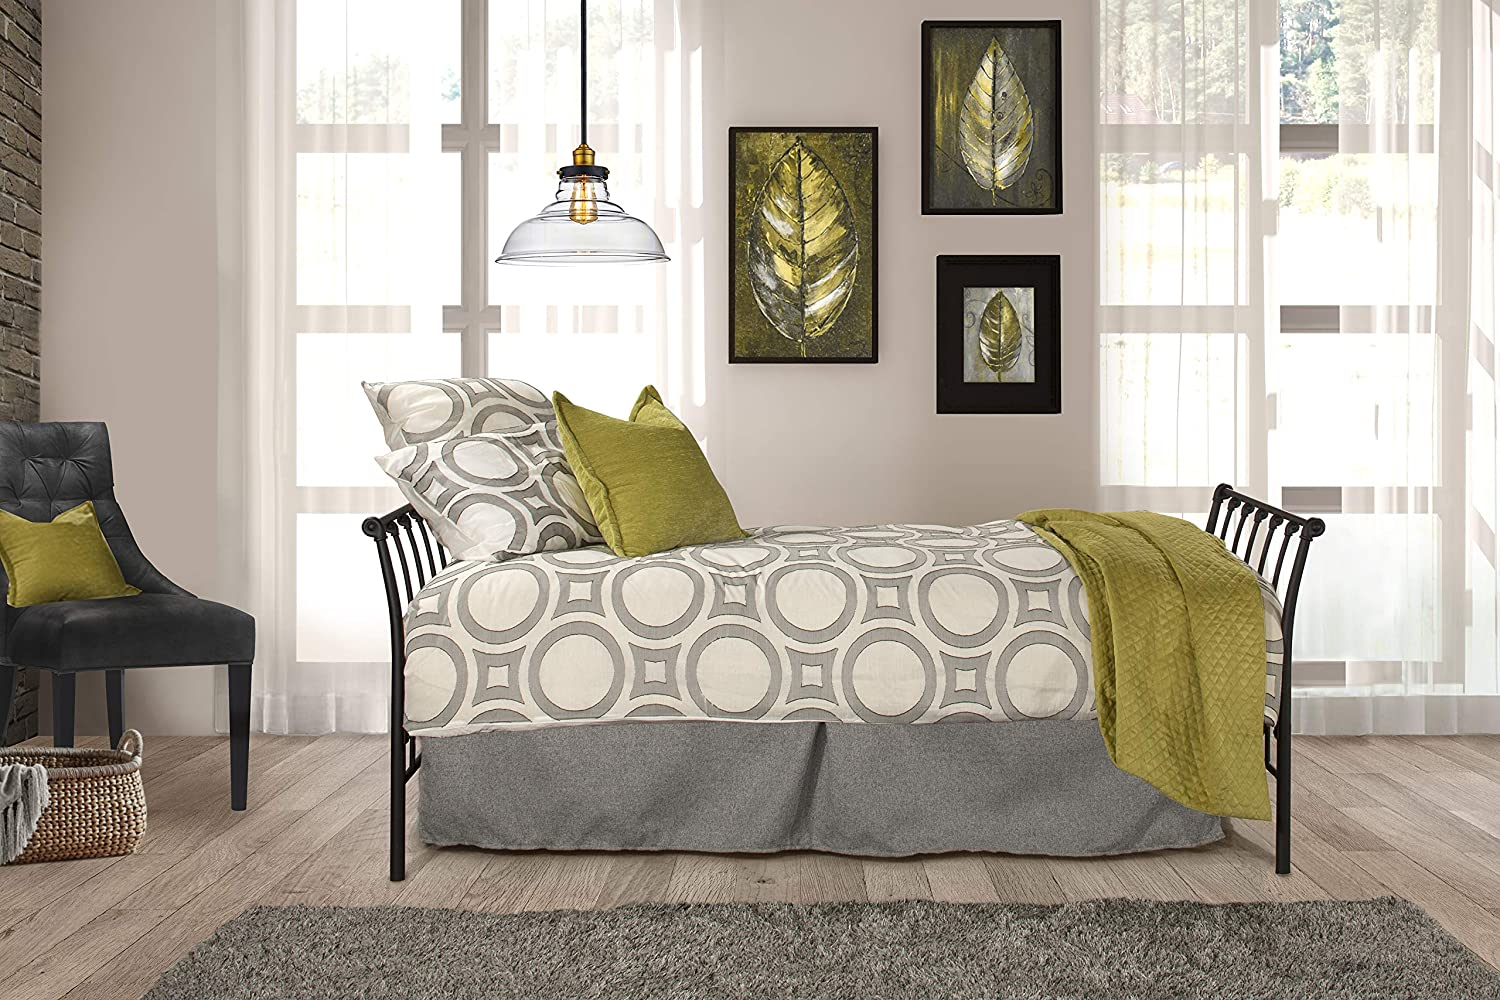 Hillsdale Midland Metal Backless Daybed Twin Black Ranking TOP19 Sparkle 55% OFF